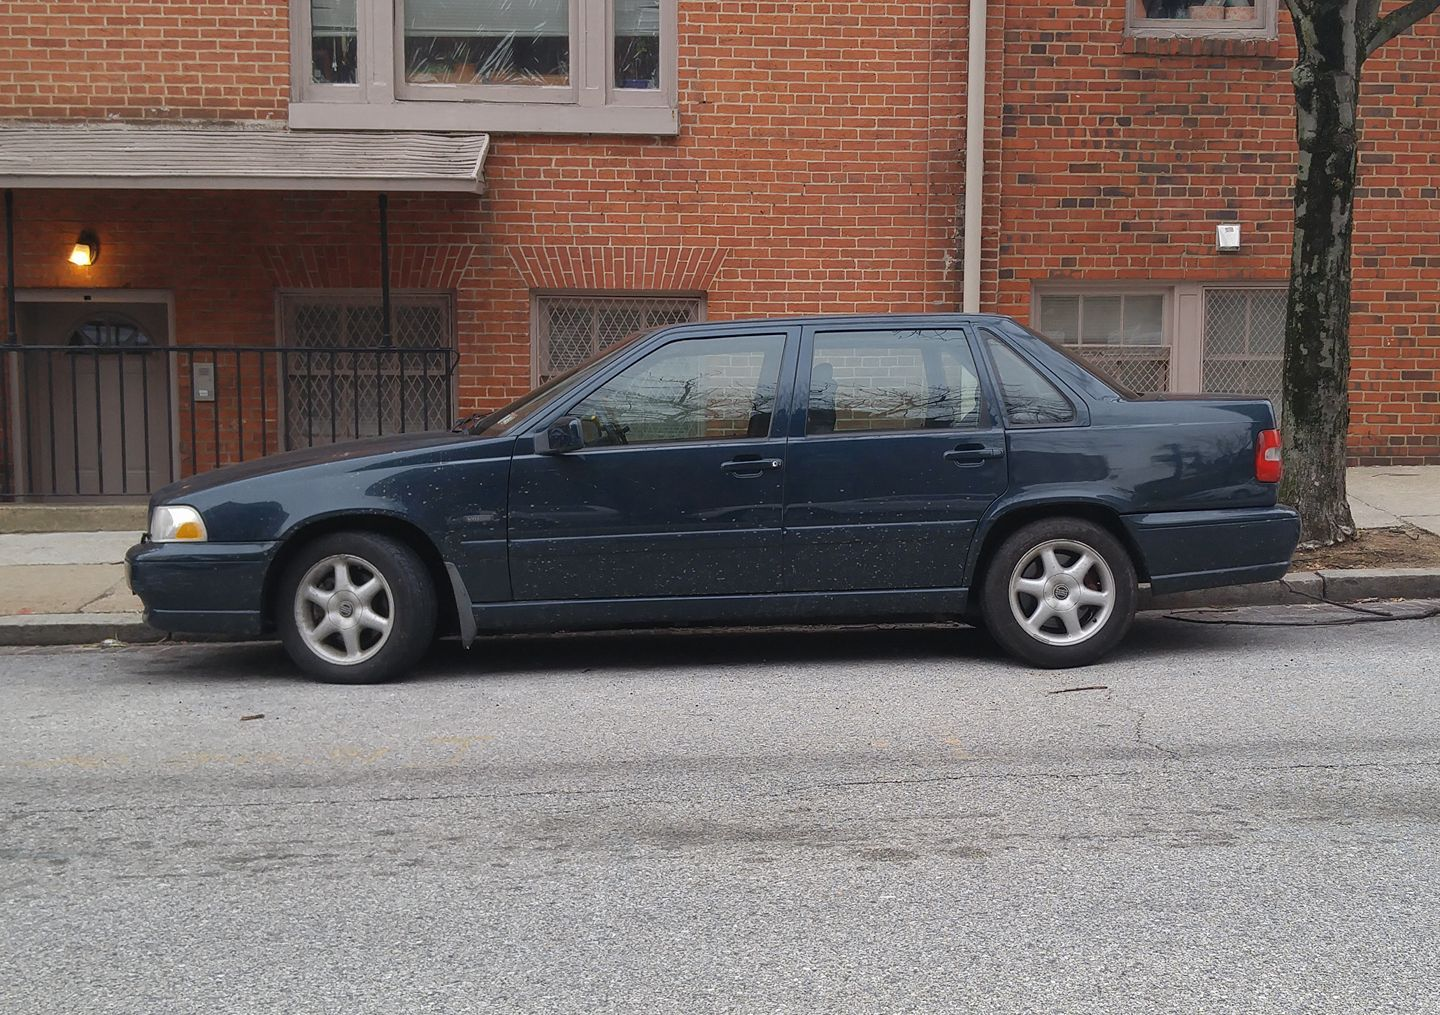 A blue 1998 Volvo S70, nothing more, nothing less